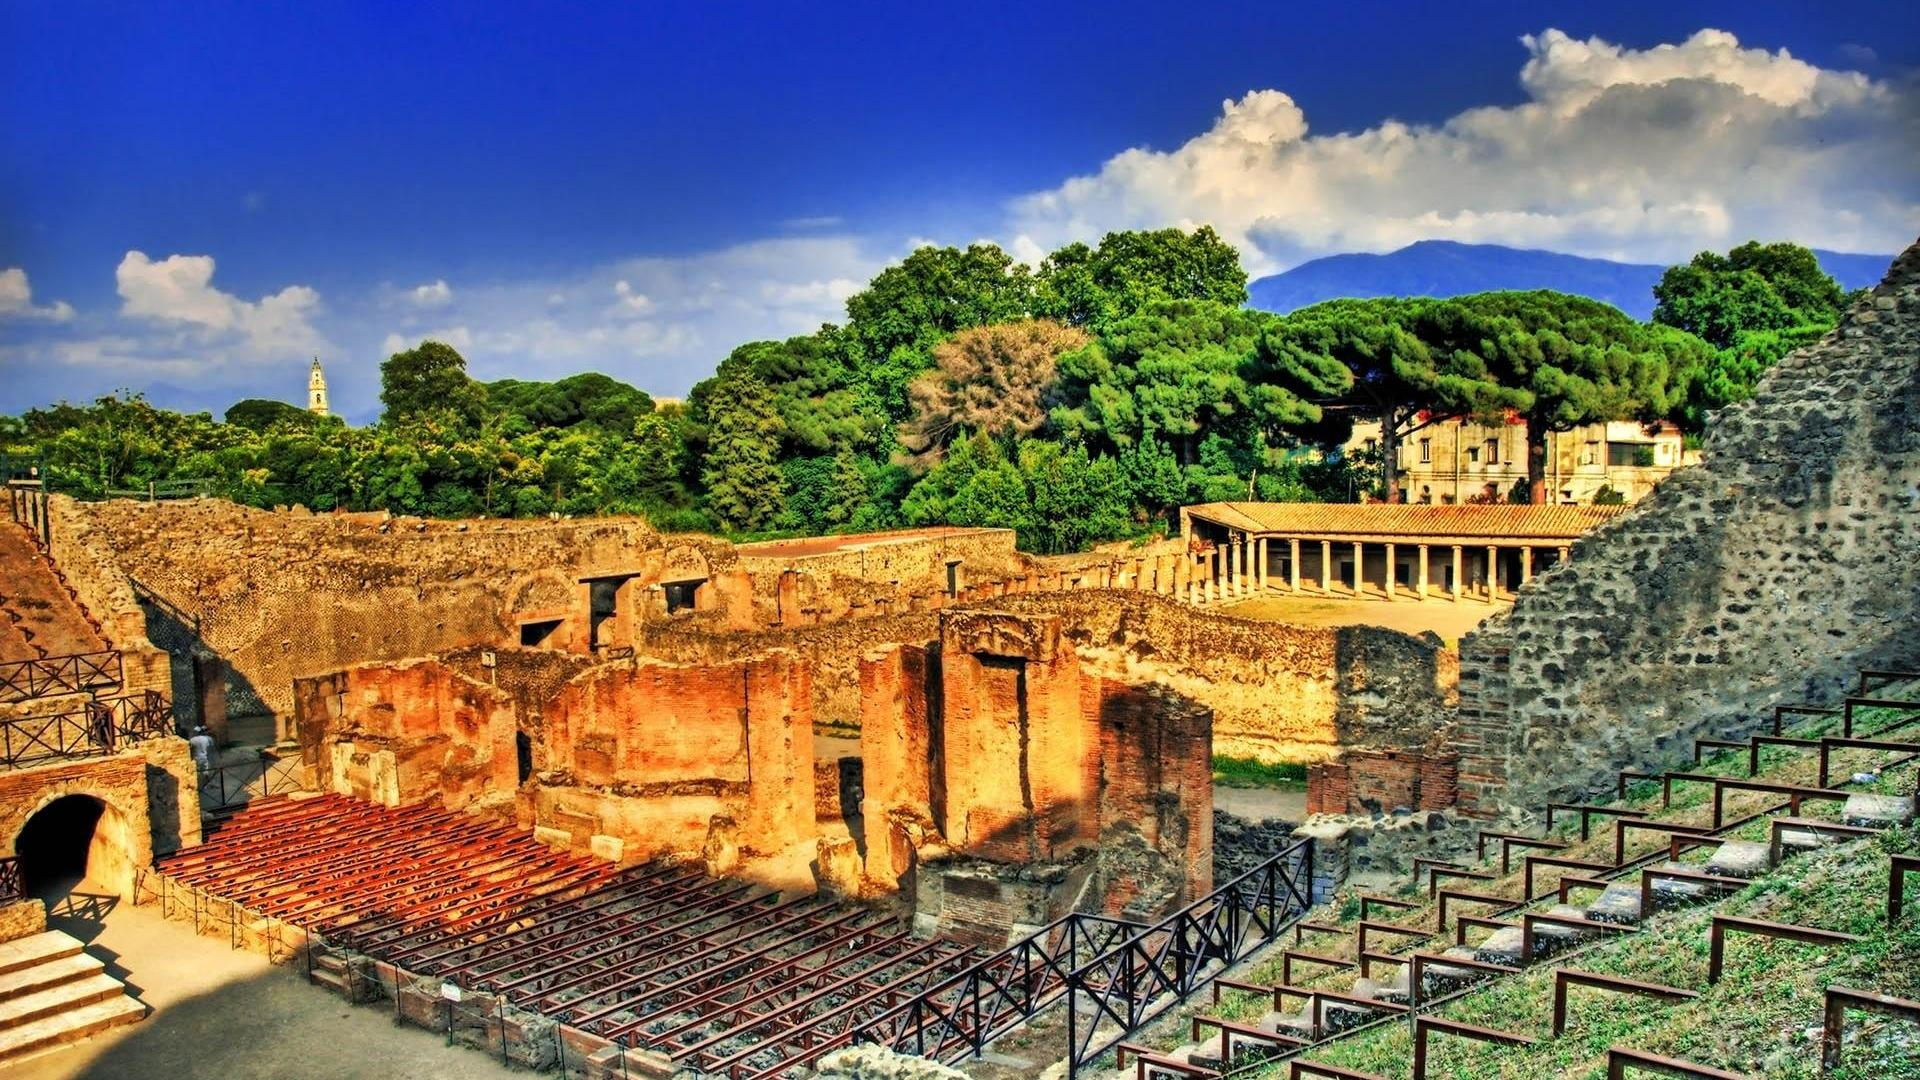 Amphitheatre Of Pompeii Wallpaper 5   1920 X 1200 stmednet 1920x1080